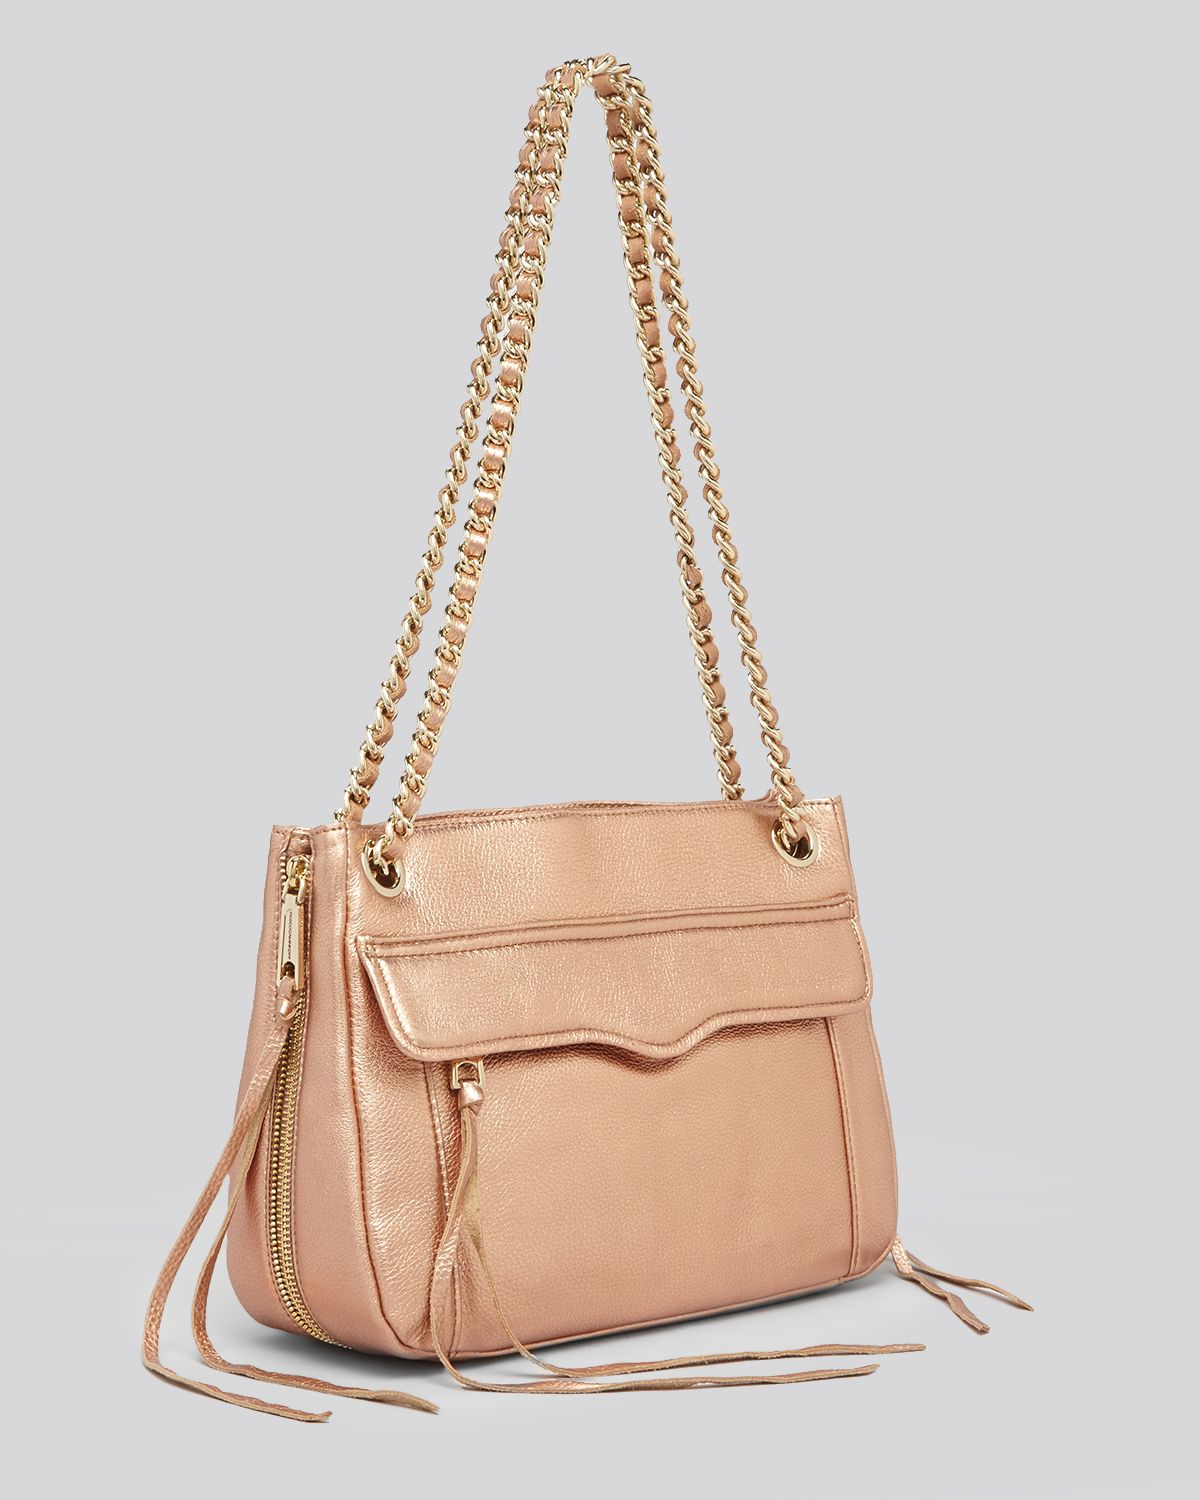 Rebecca minkoff Shoulder Bag Metallic Swing in Metallic | Lyst